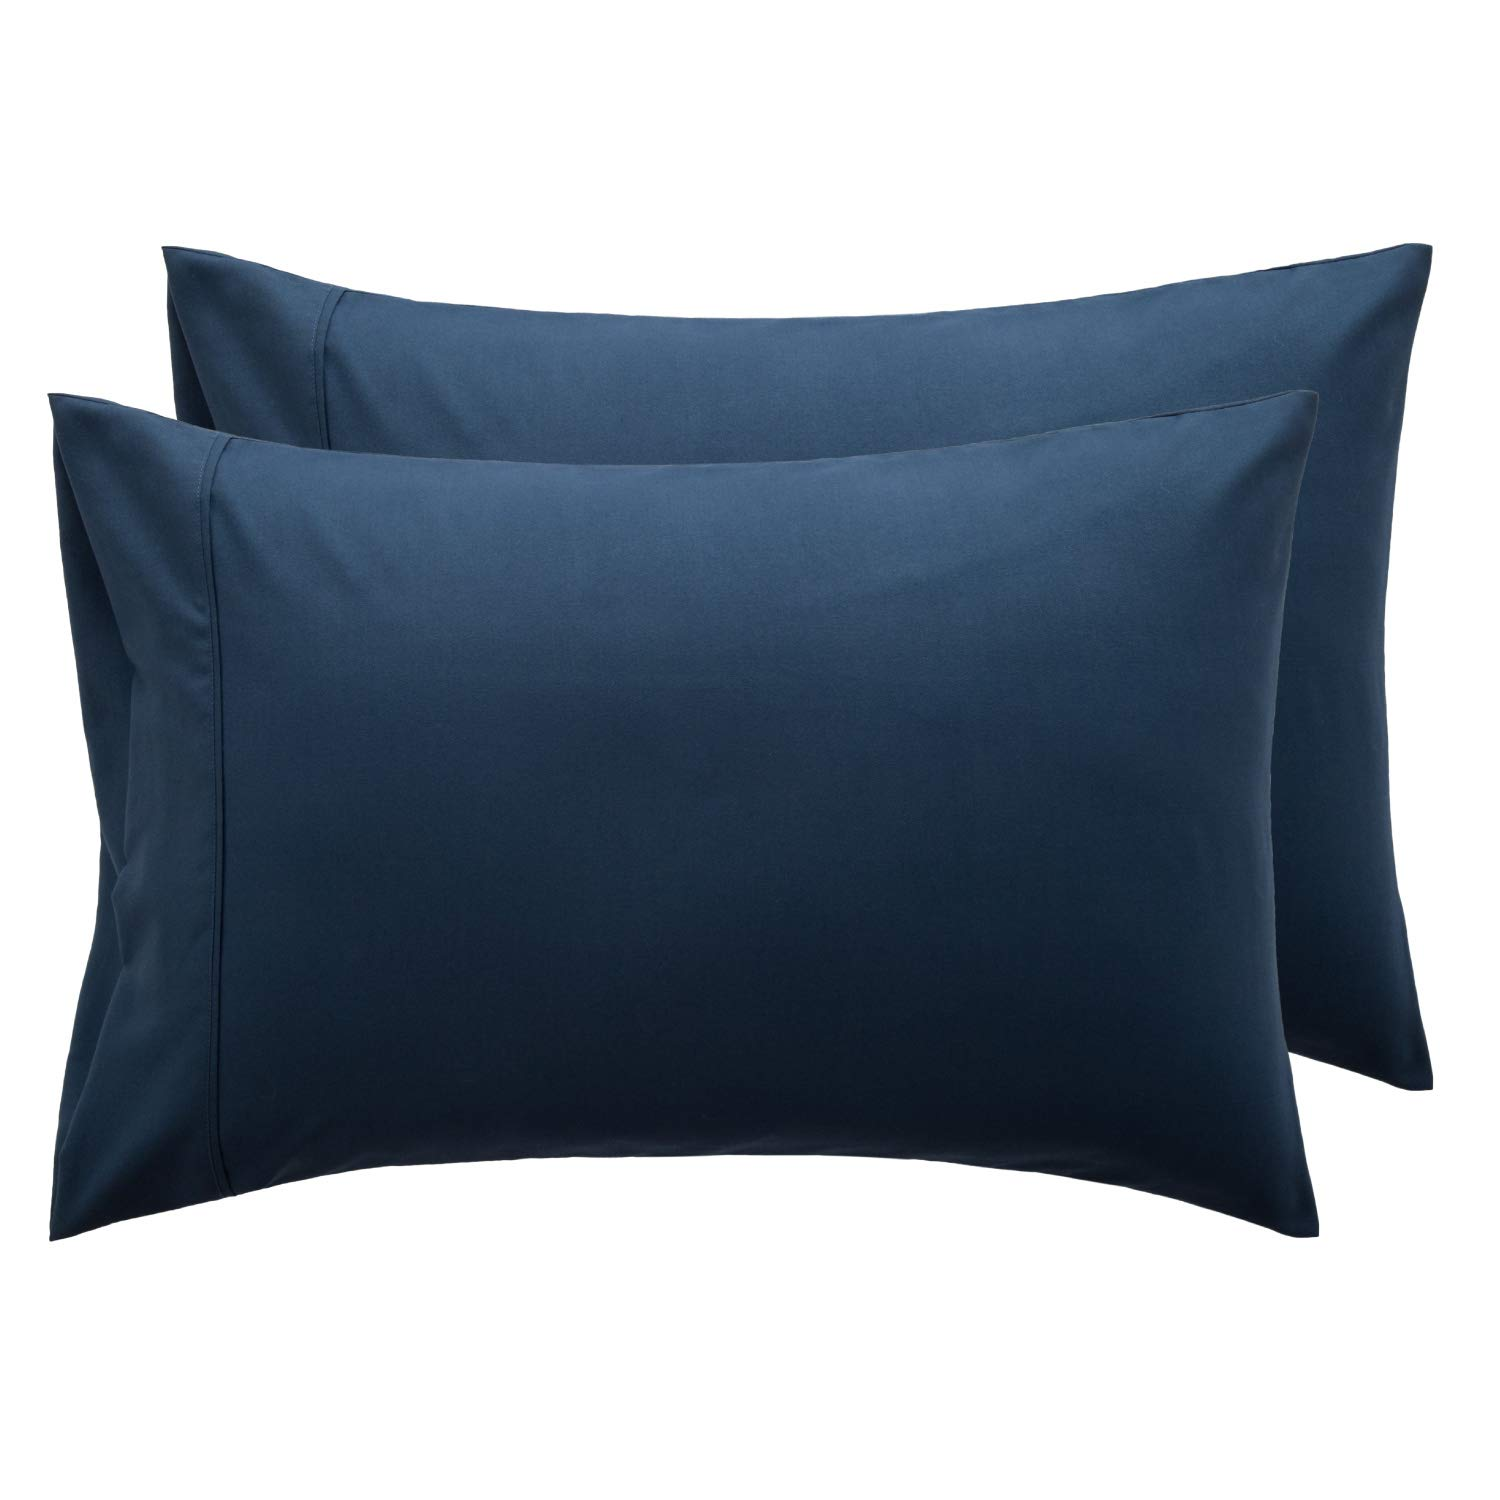 Bedsure Navy Pillowcase Set - Queen Size (20 x 30 inches) Bed Pillow Cover - Brushed Microfiber, Wrinkle, Fade & Stain Resistant - Envelop Closure Pillow Case Set of 2